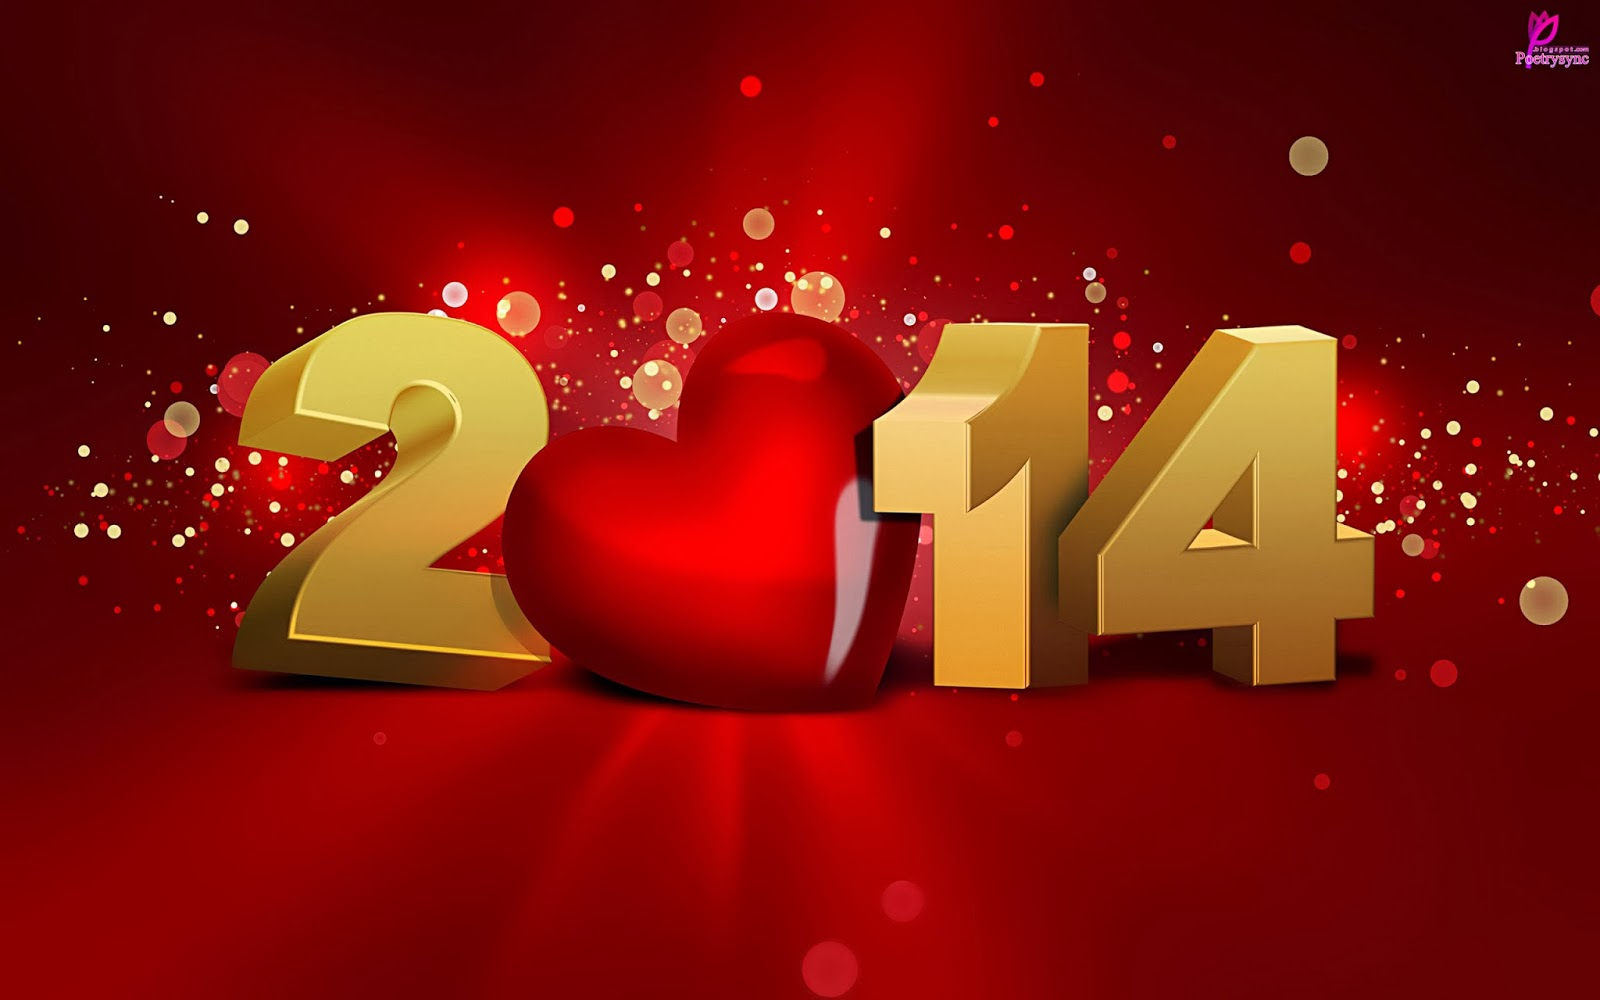 happy new year greetings 2014 hd wallpaper for